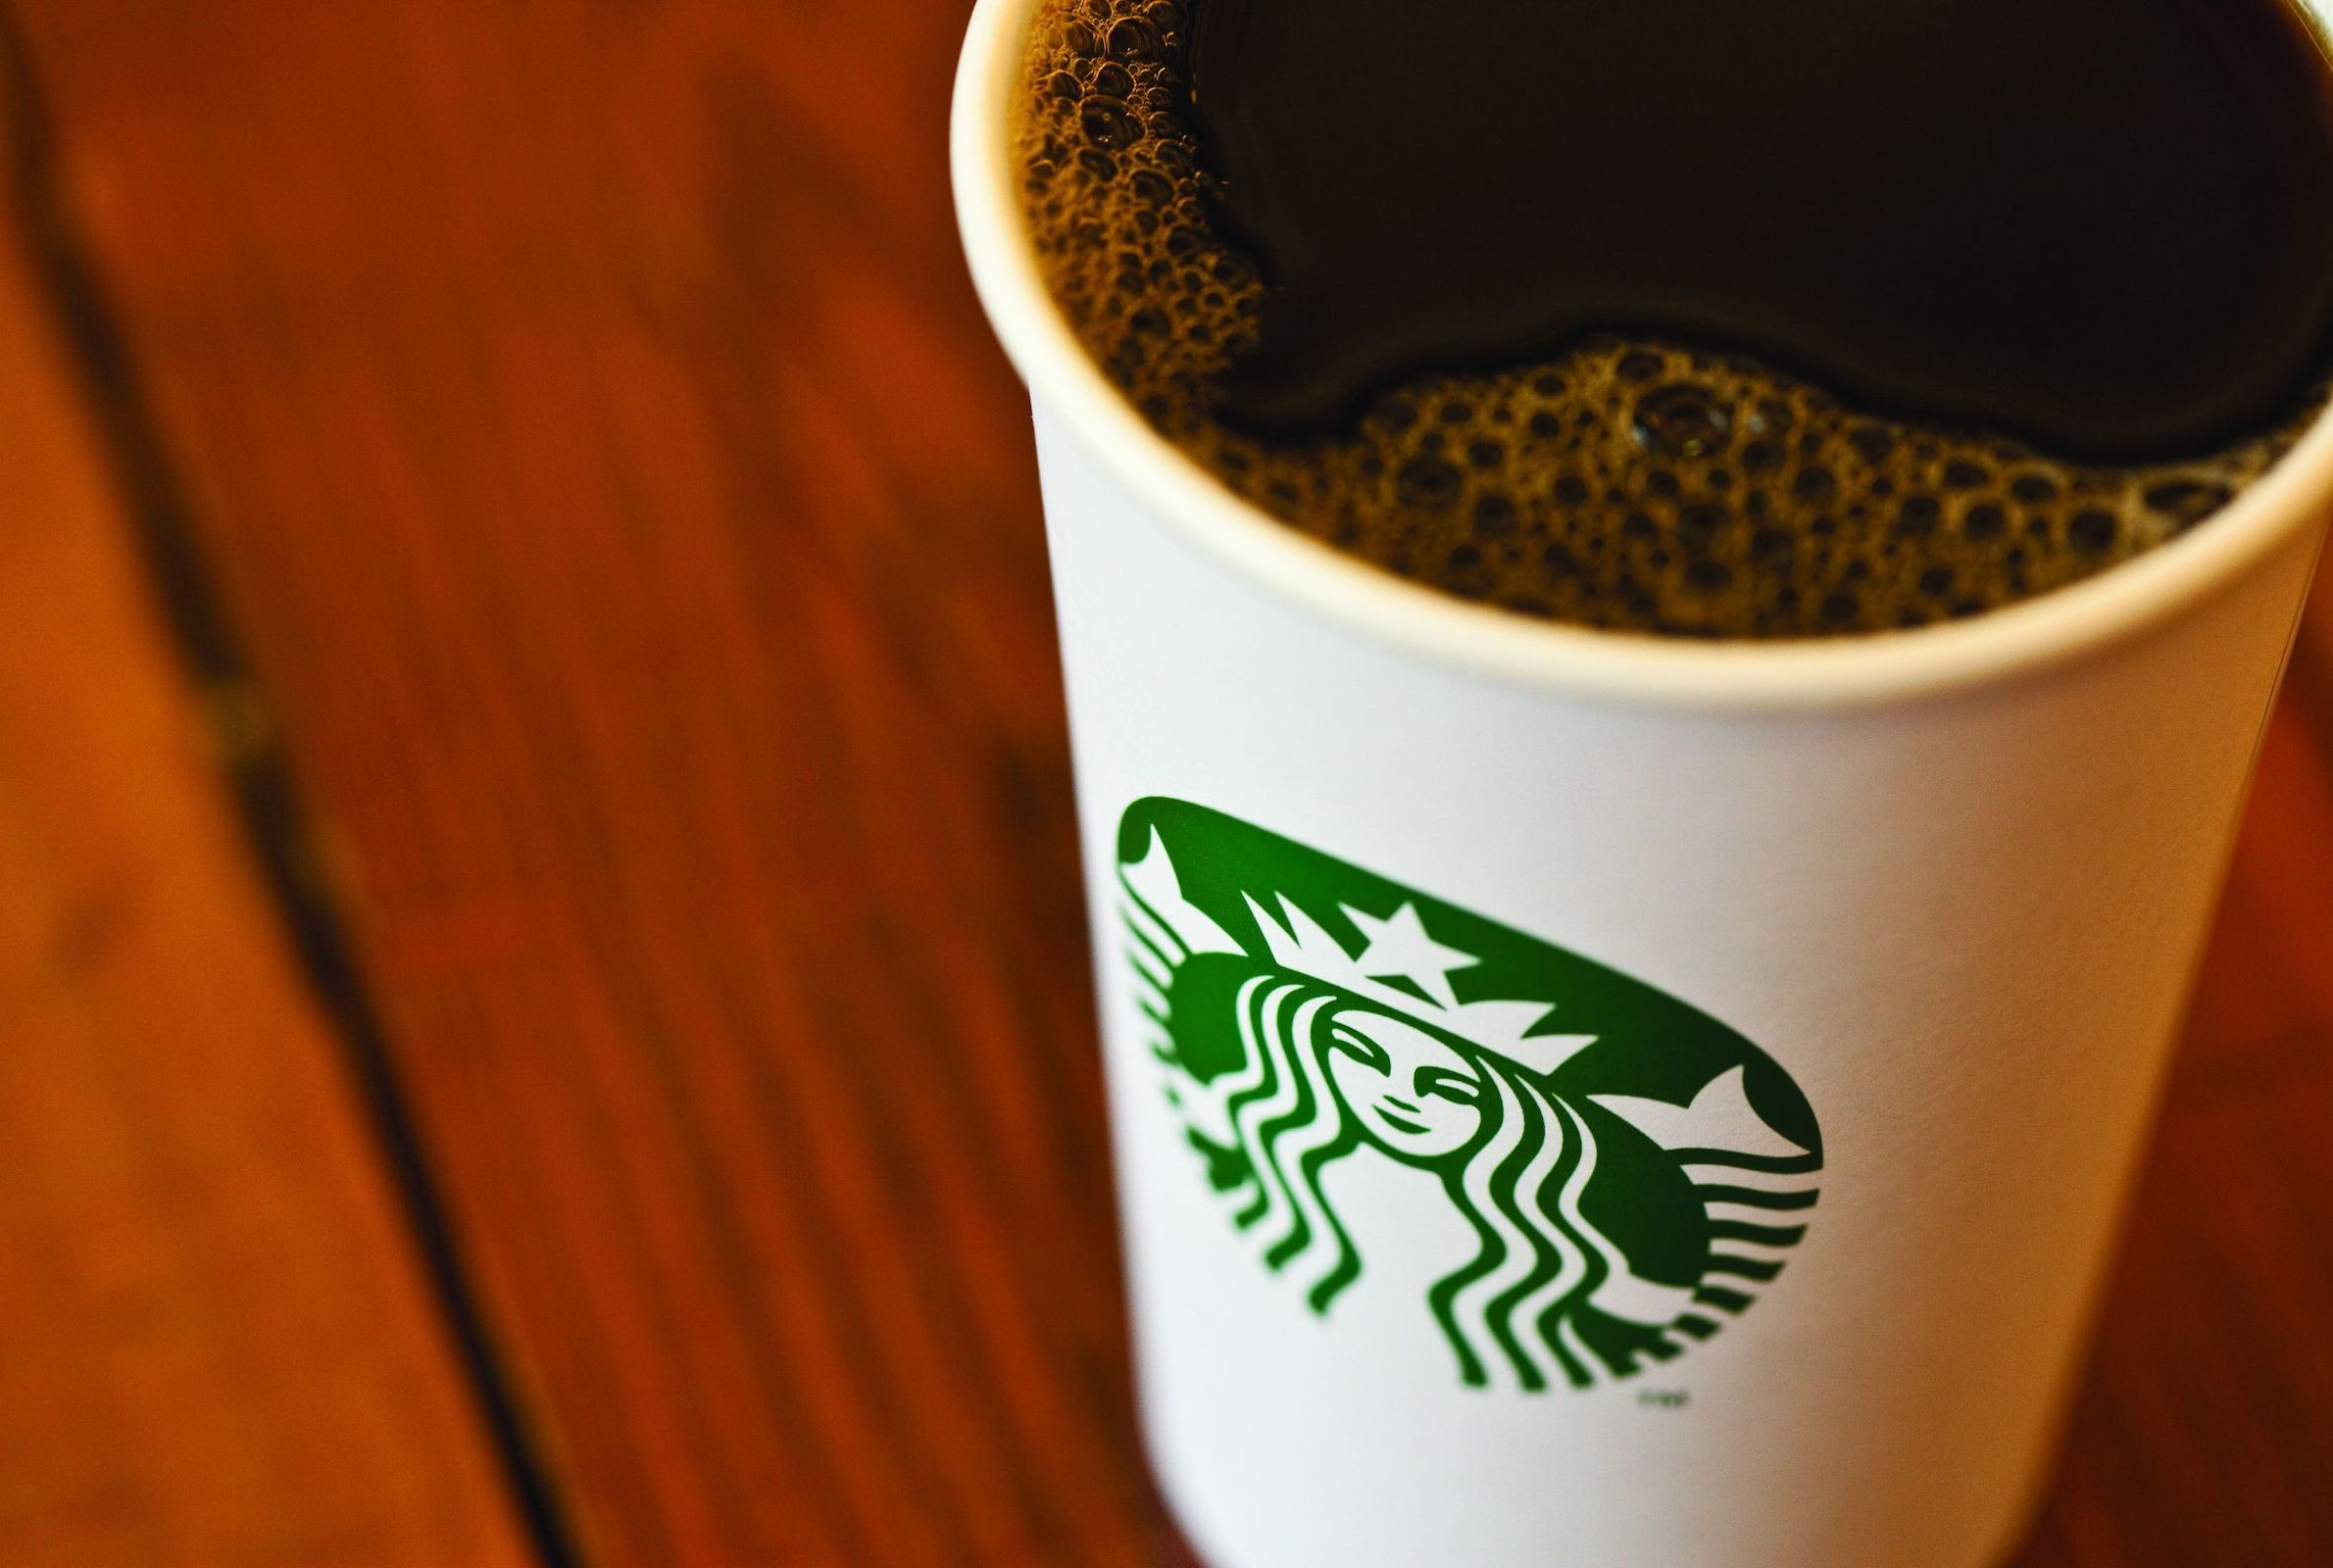 14 Floss Freshly Brewed StarbucksMental Facts About zMGVqSLUp